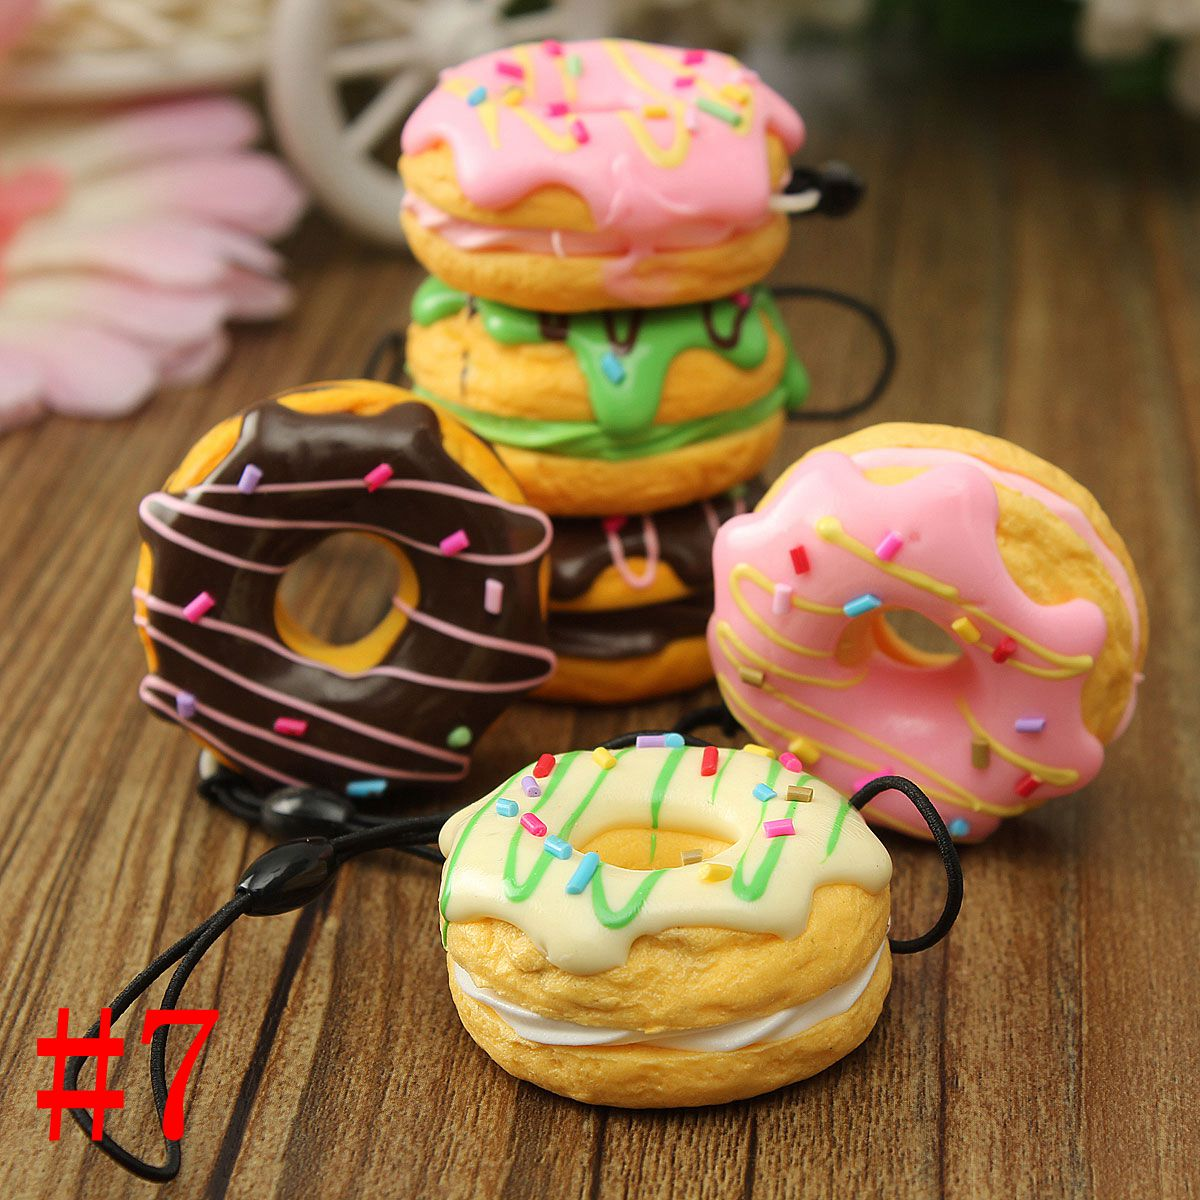 13-Style Soft Cute Squishy Bread Kawaii Keychain Bag Phone Charm Strap Pendant